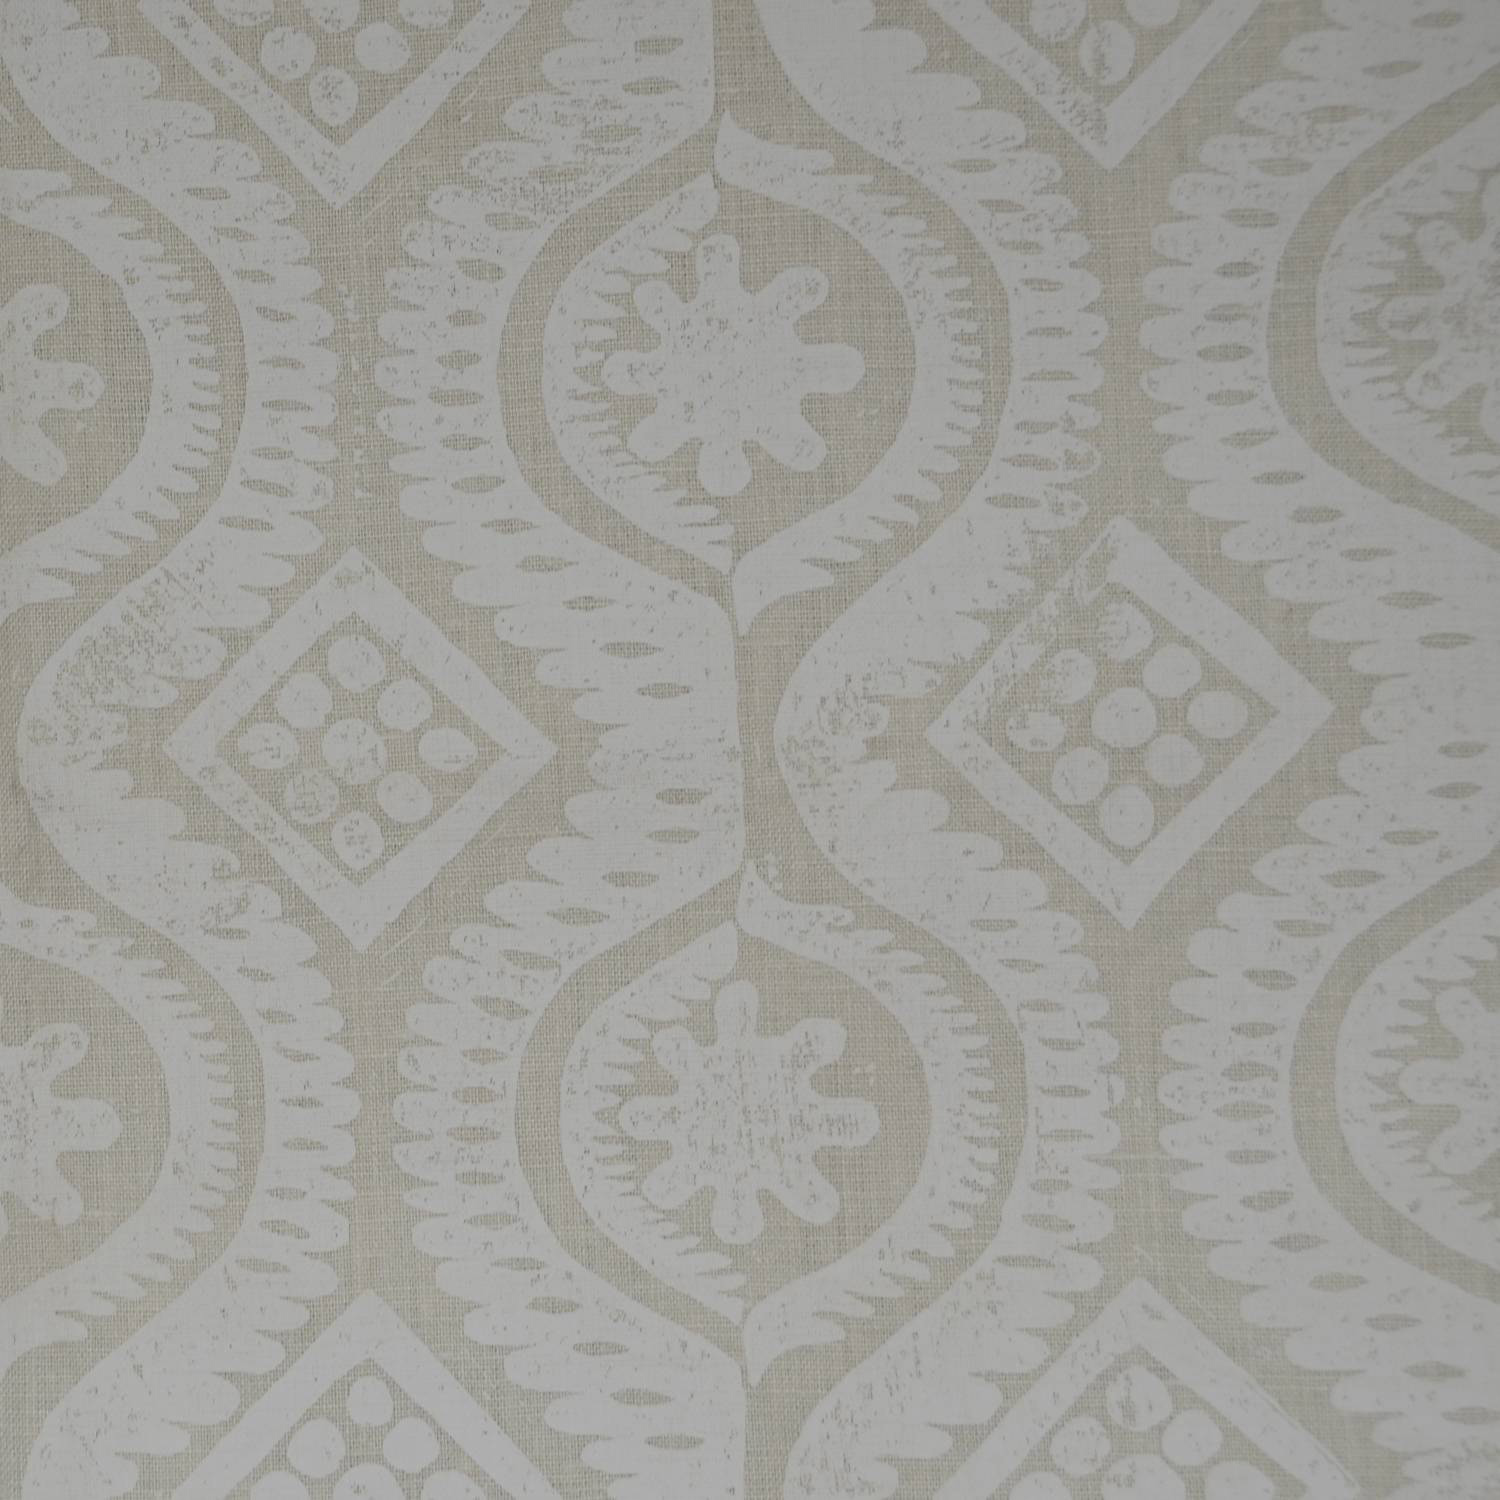 <p><strong>DAMASK</strong>white 6500-05<a href=/the-peggy-angus-collection/damask-white-6500-05>More →</a></p>